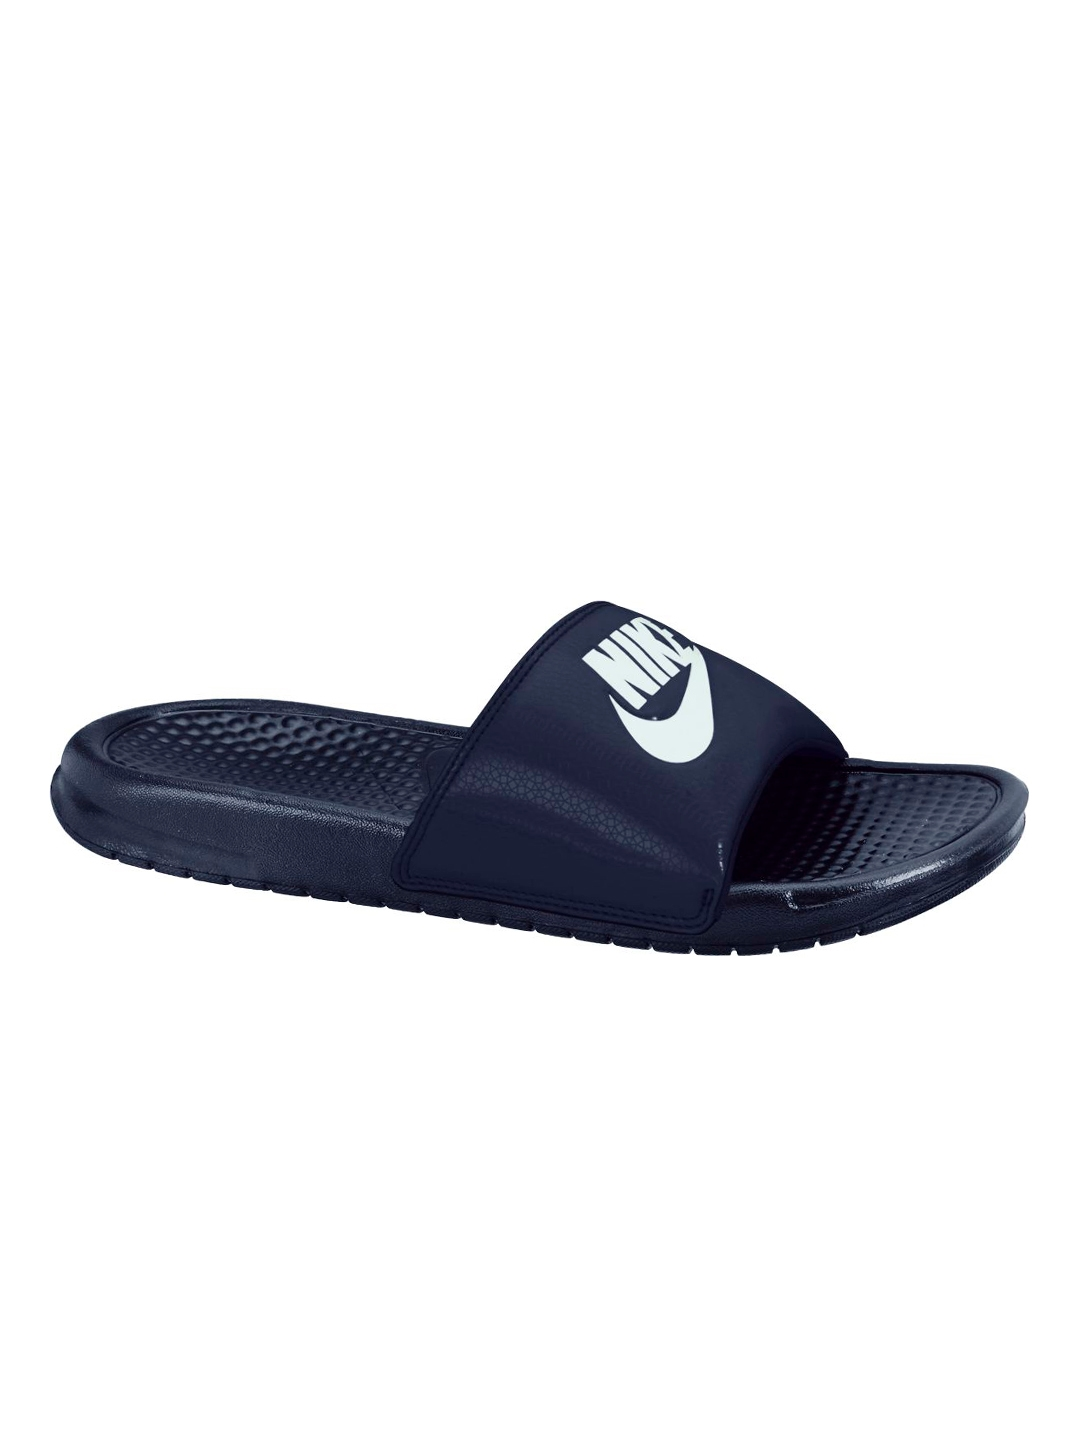 55a032361 Buy Nike Men Navy Benassi JDI Printed Flip Flops - Flip Flops for ...